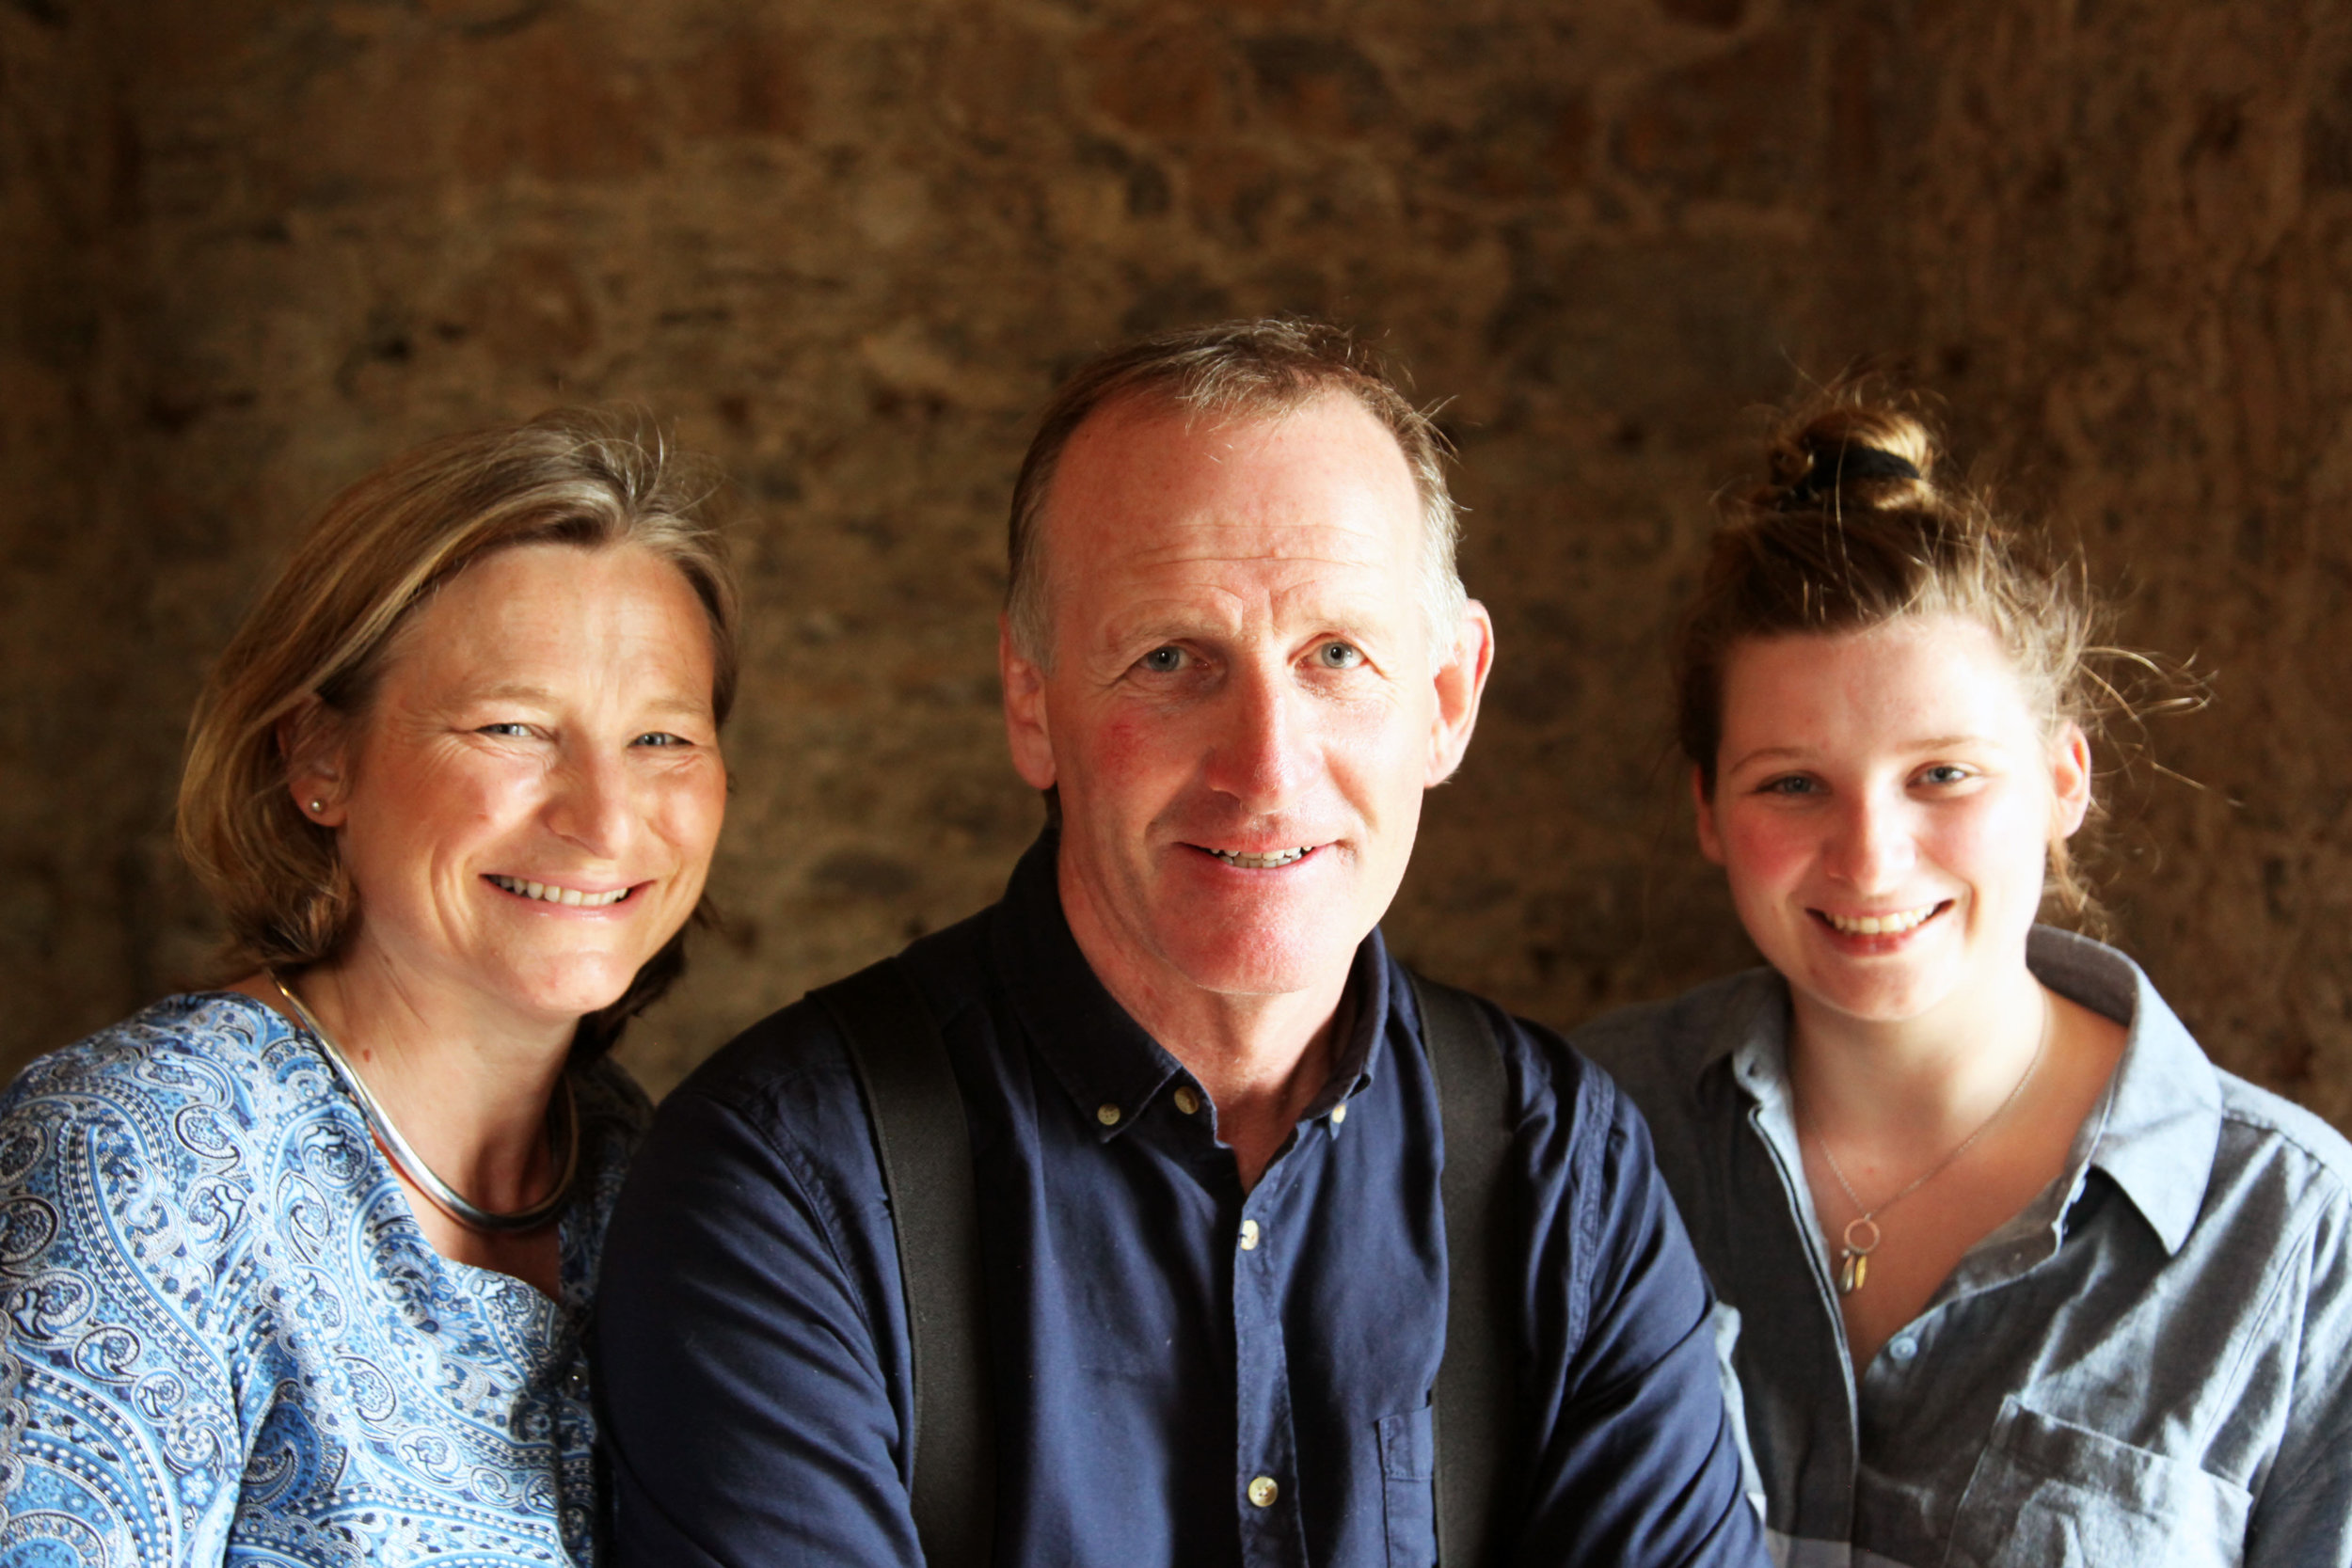 The Family - Peter Baker, his wife Sarah and their children; Julie, Holly and Sam are the proud residents of Cloughjordan House today. Over the past decade or more, they have transformed Cloughjordan House from a dairy farm into a magical destination with the best in food, atmosphere and accommodation. The family live in their own wing of the main house and welcome guests as though they are friends and family, even the family dogs Louis and Monty are available for a belly rub during your stay.